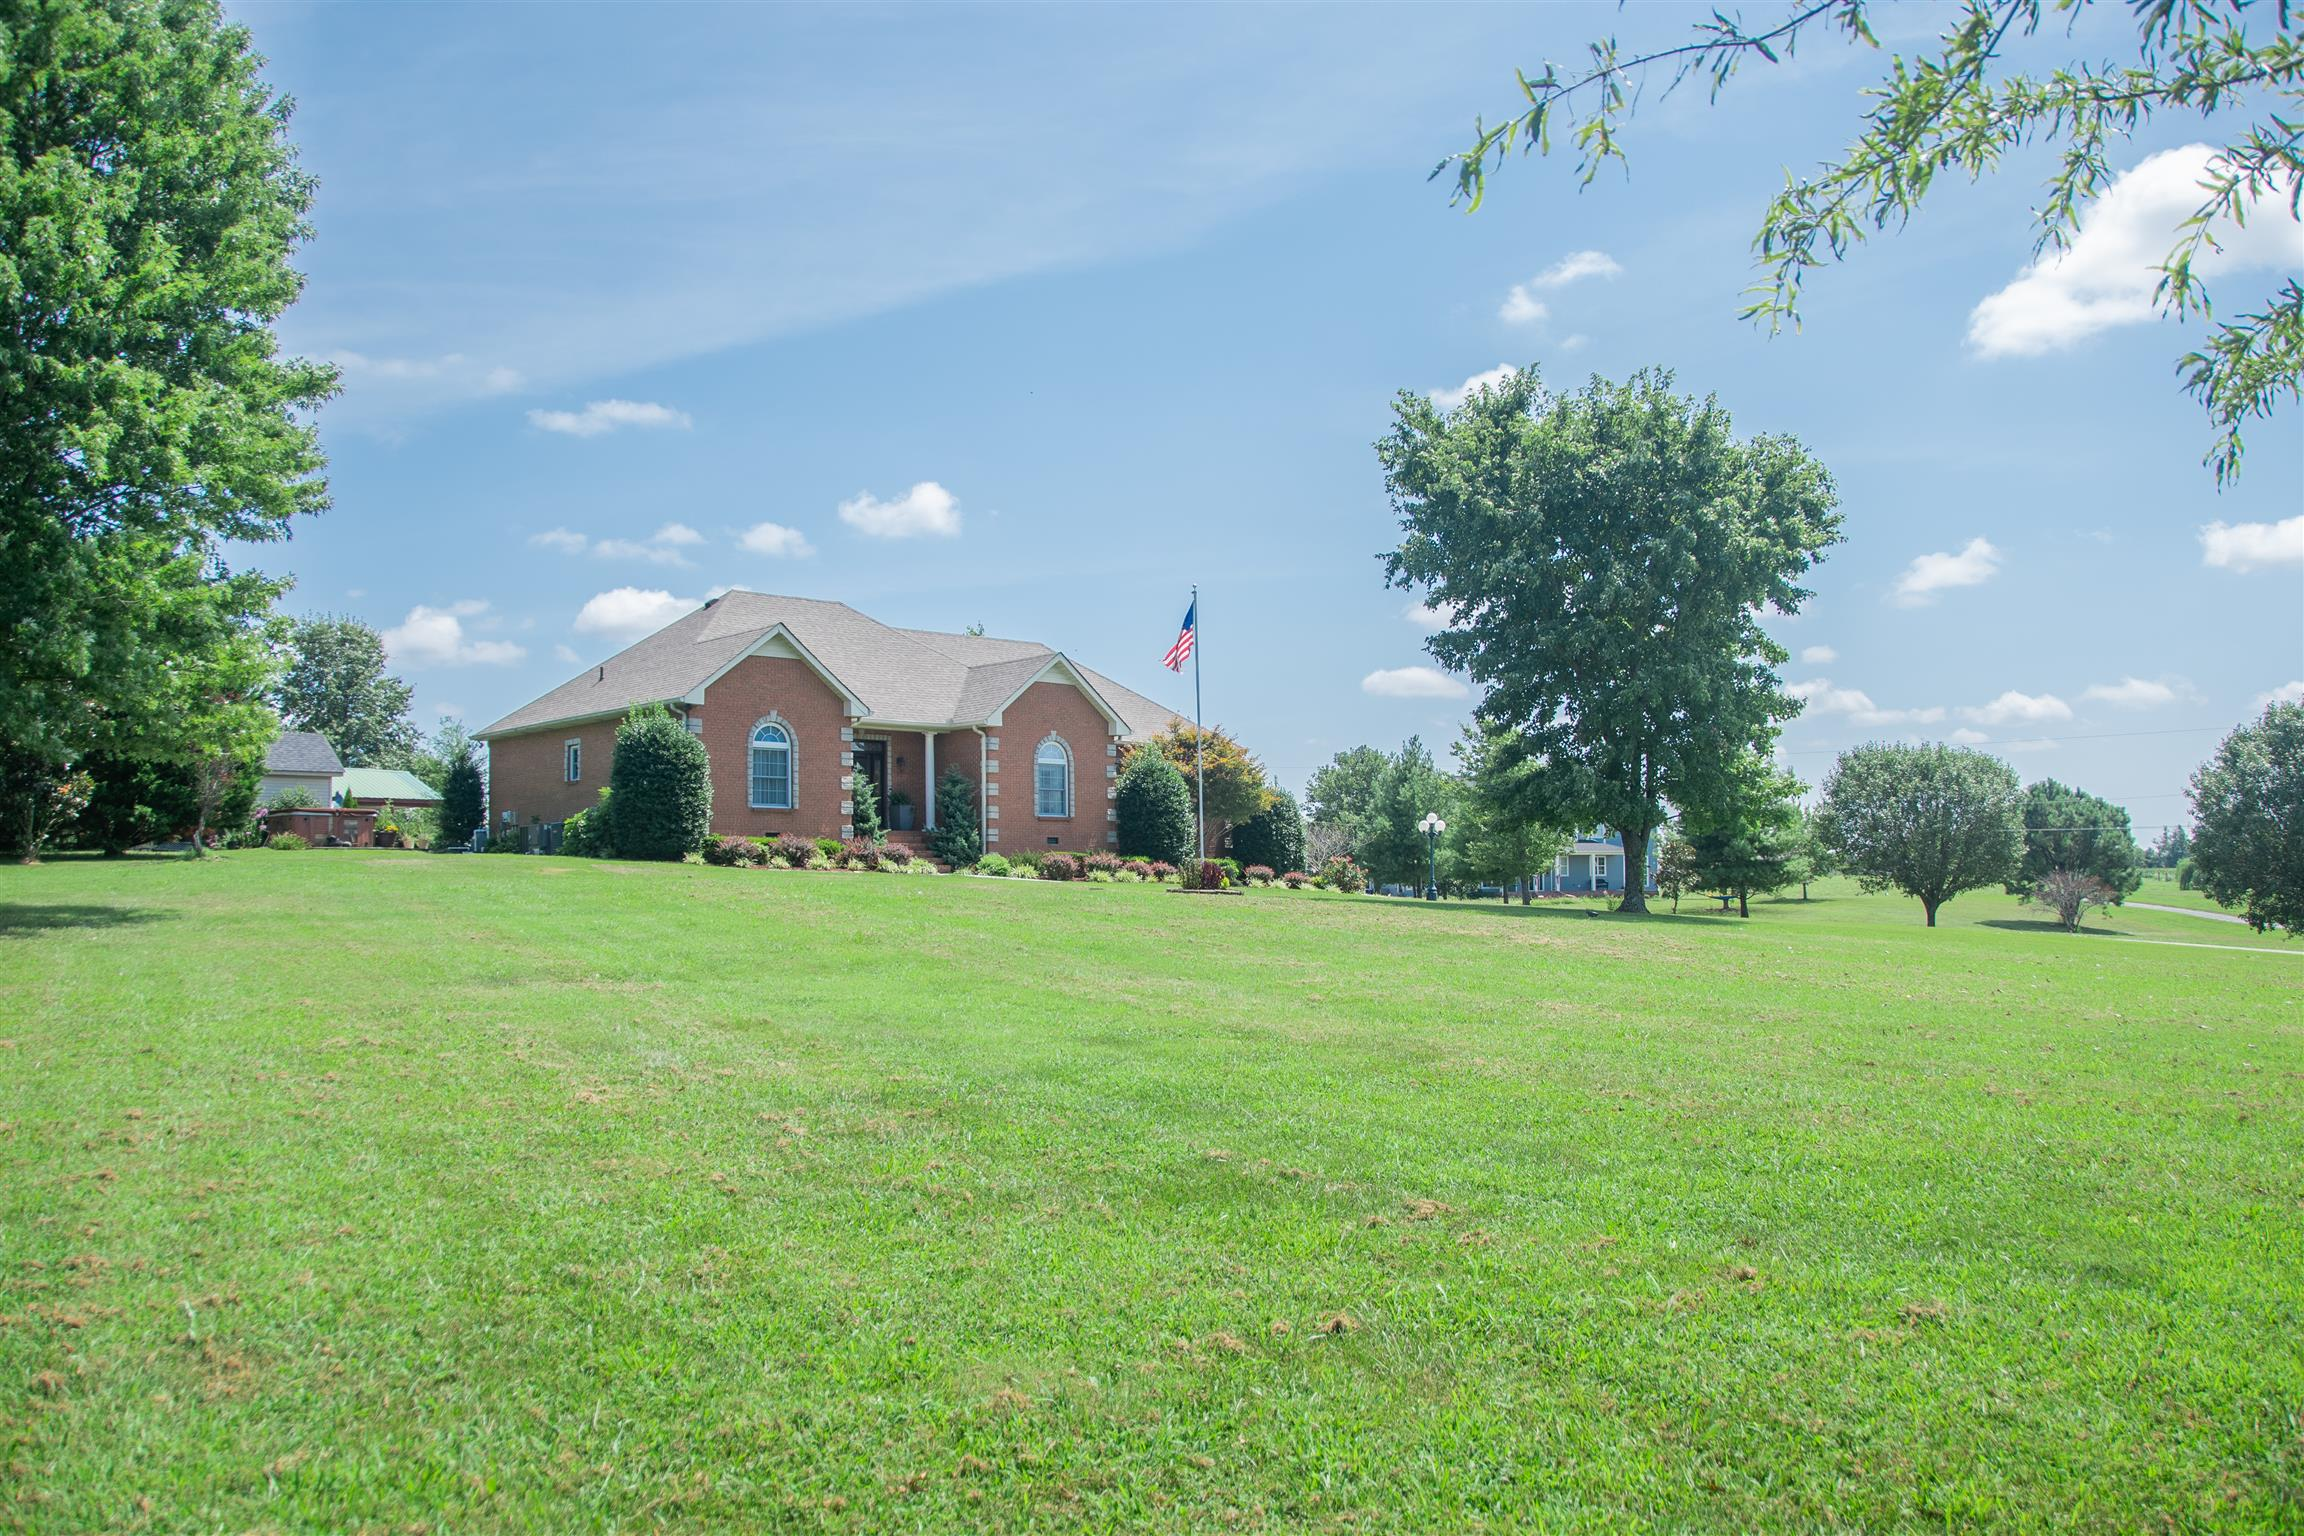 3383 Maxie Jones Rd, Springfield, TN 37172 - Springfield, TN real estate listing